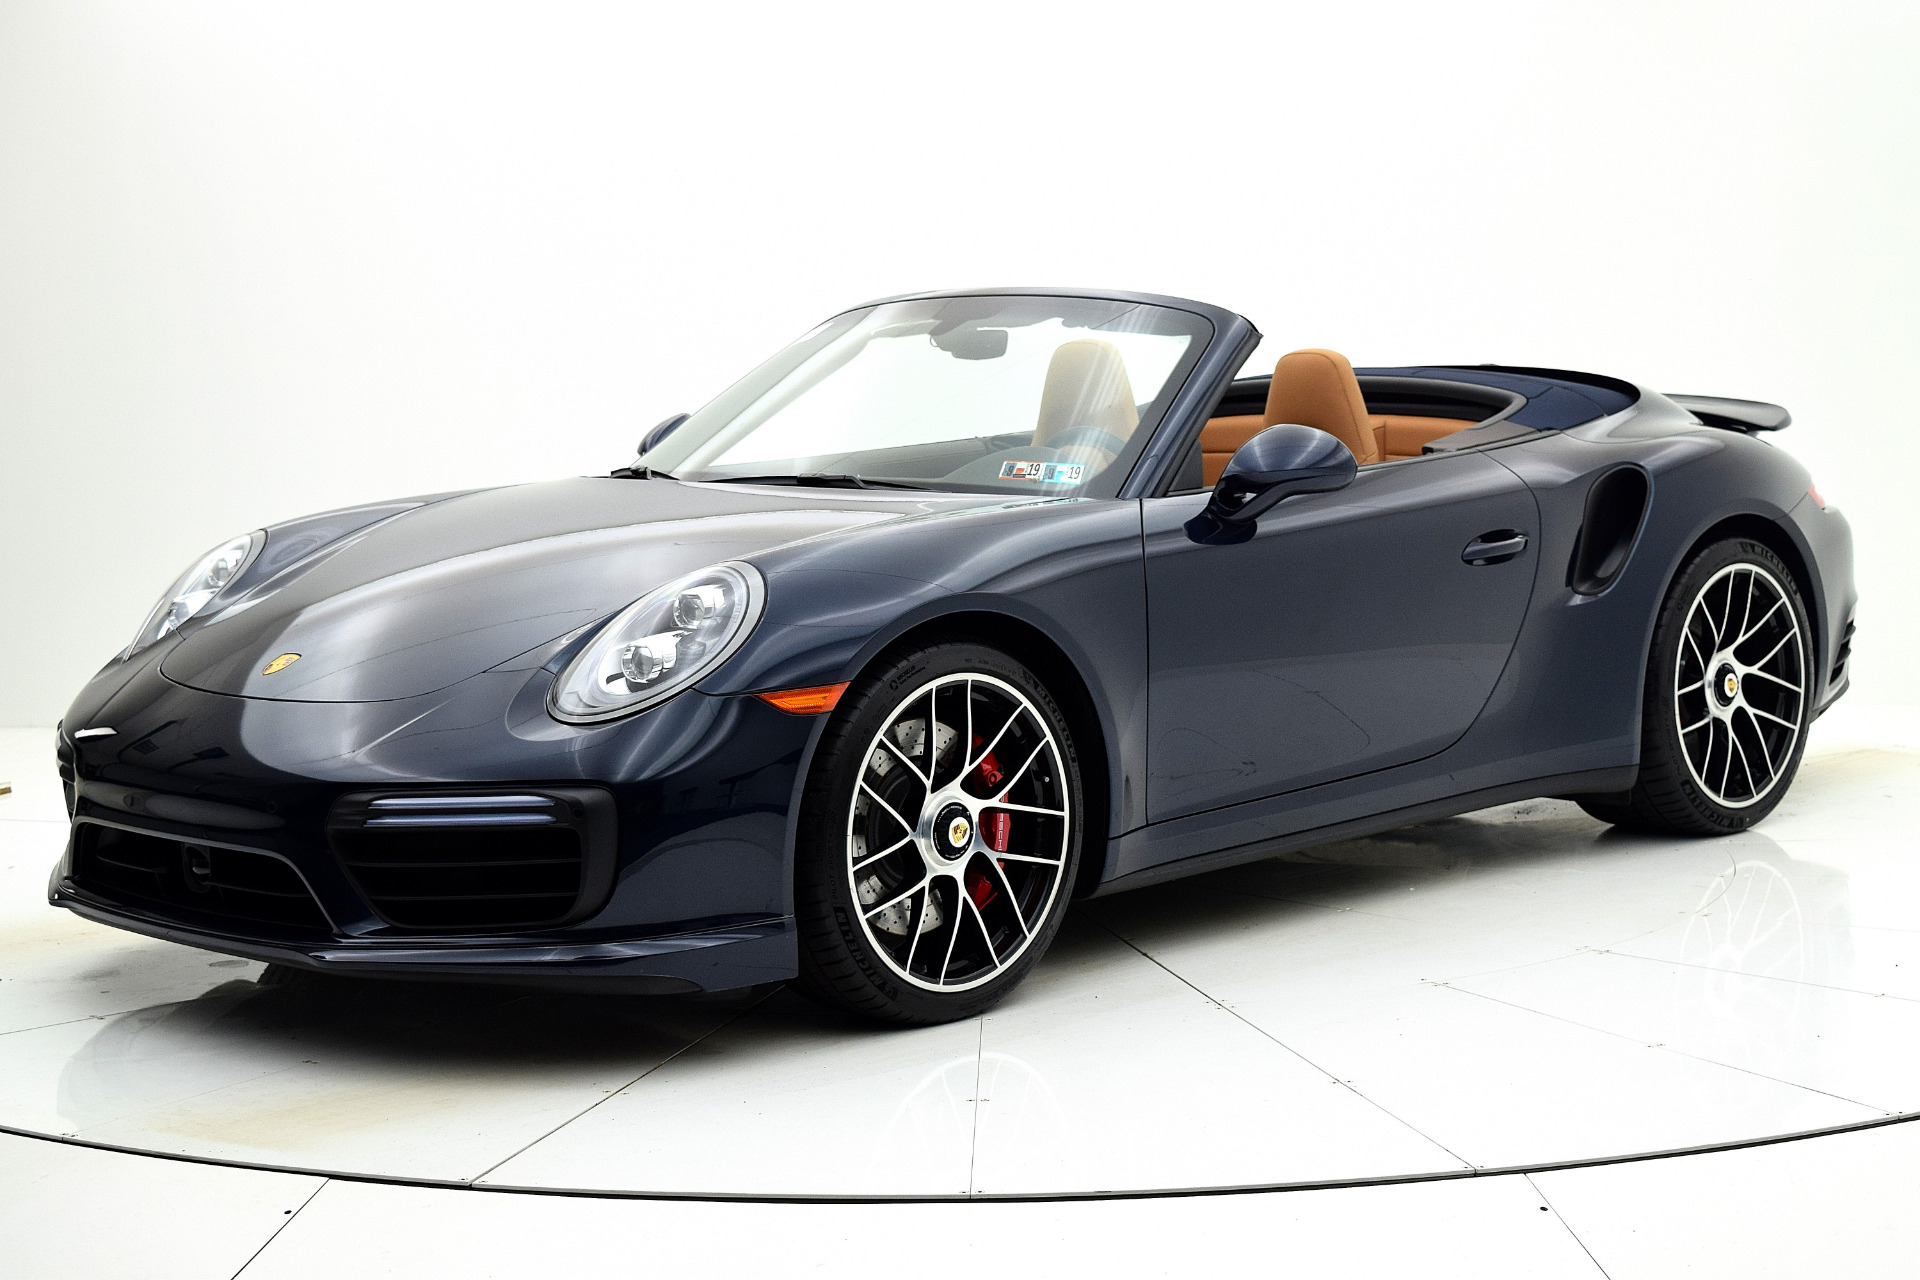 Used 2019 Porsche 911 Turbo Cabriolet for sale Sold at F.C. Kerbeck Bentley Palmyra N.J. in Palmyra NJ 08065 2